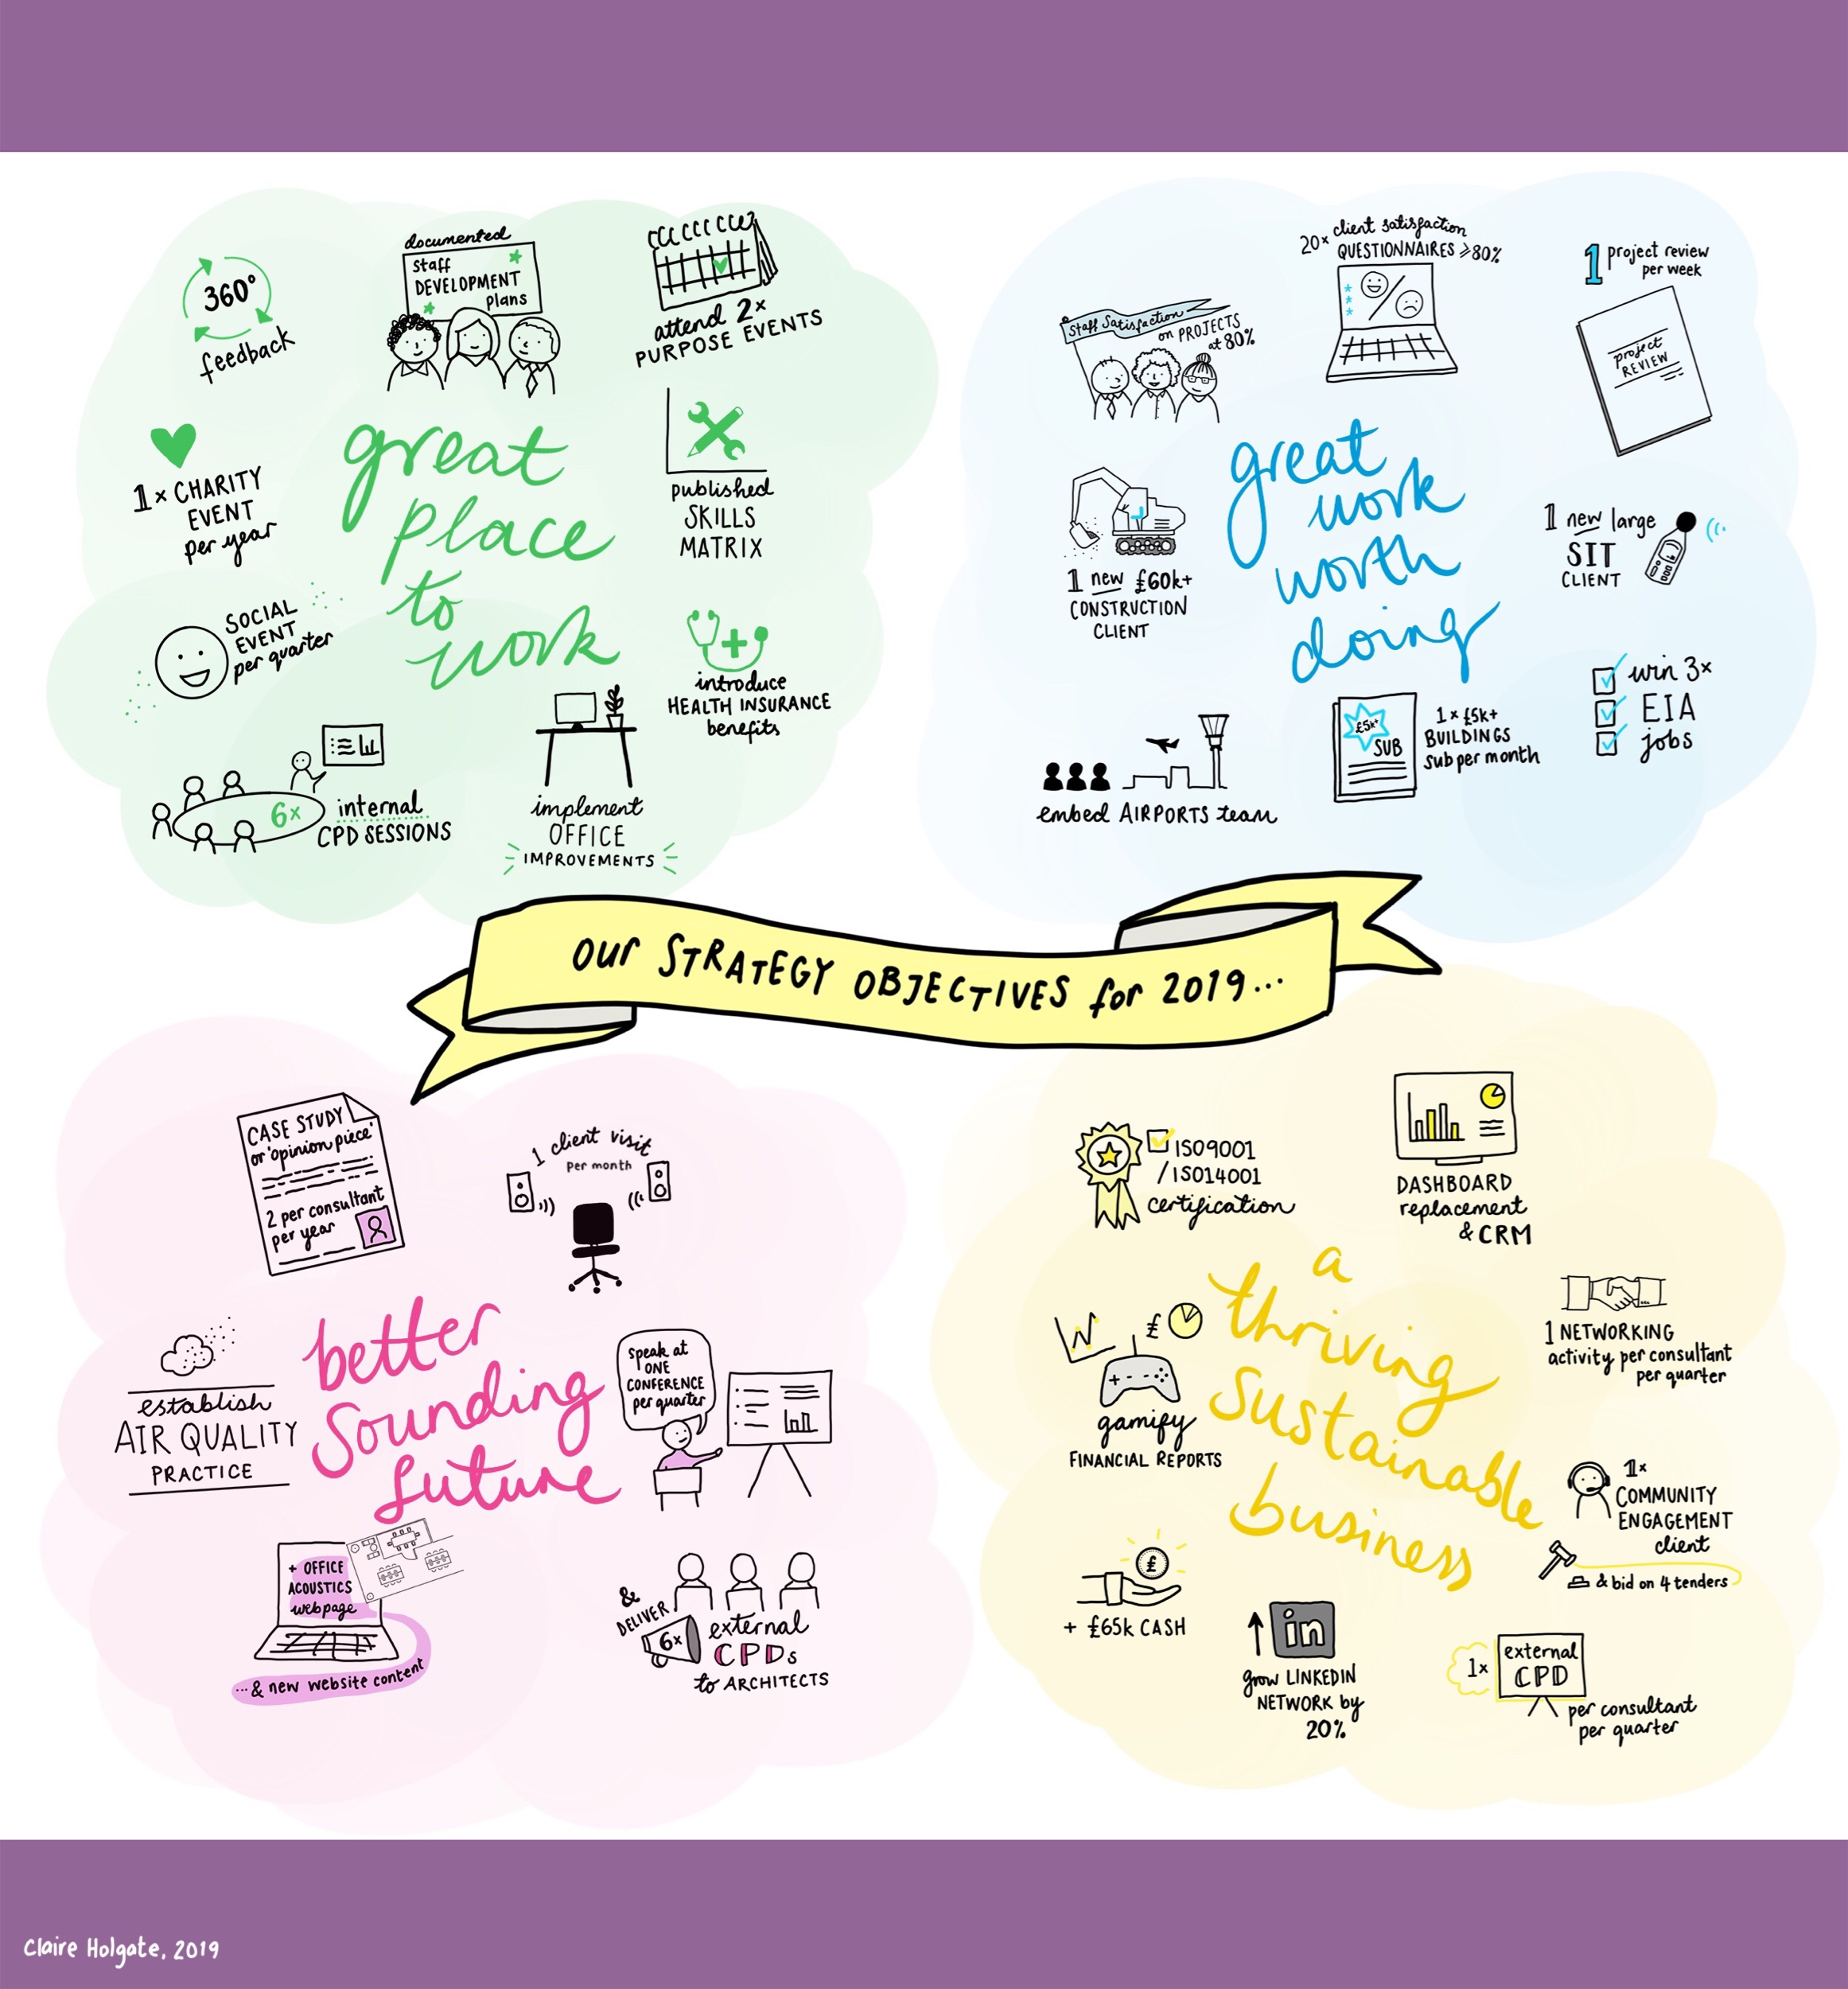 Strategy illustrations for employee-owned Brighton company.